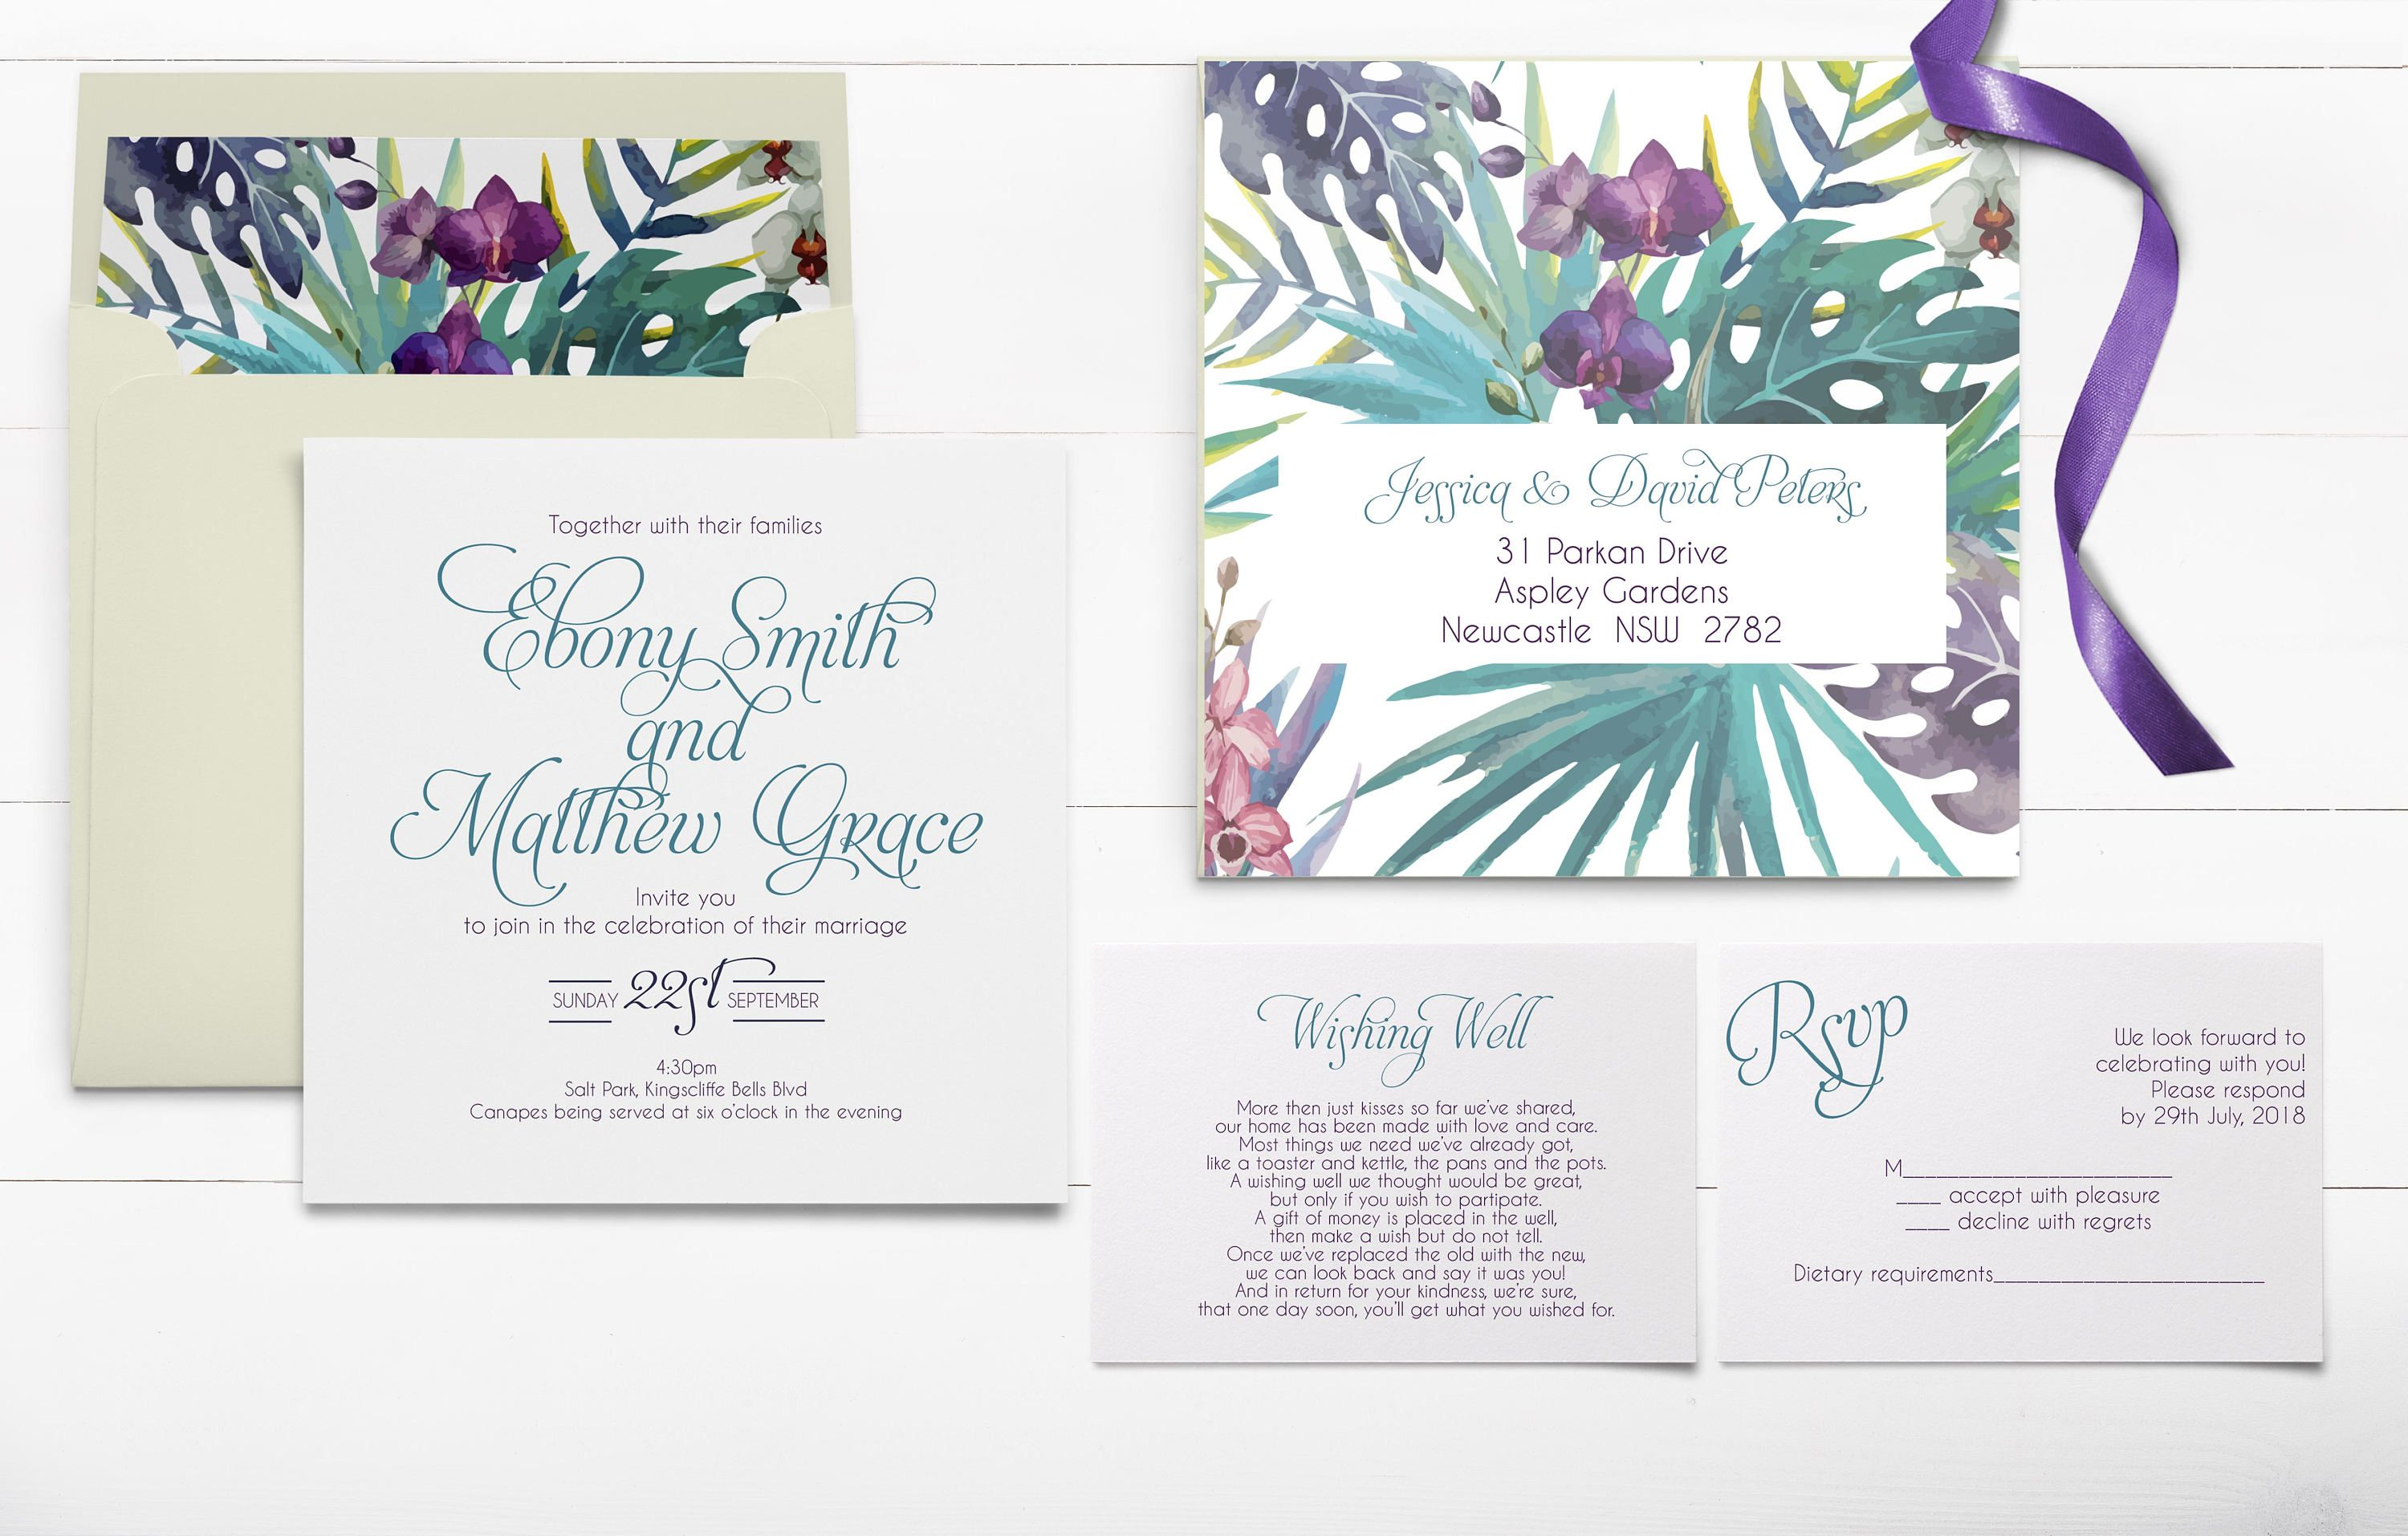 tropical wedding invitations destination wedding palm leaves Wedding Invitations Newcastle Nsw tropical wedding invitations destination wedding palm leaves invitation beach wedding invitation tropical wedding invitations newcastle nsw